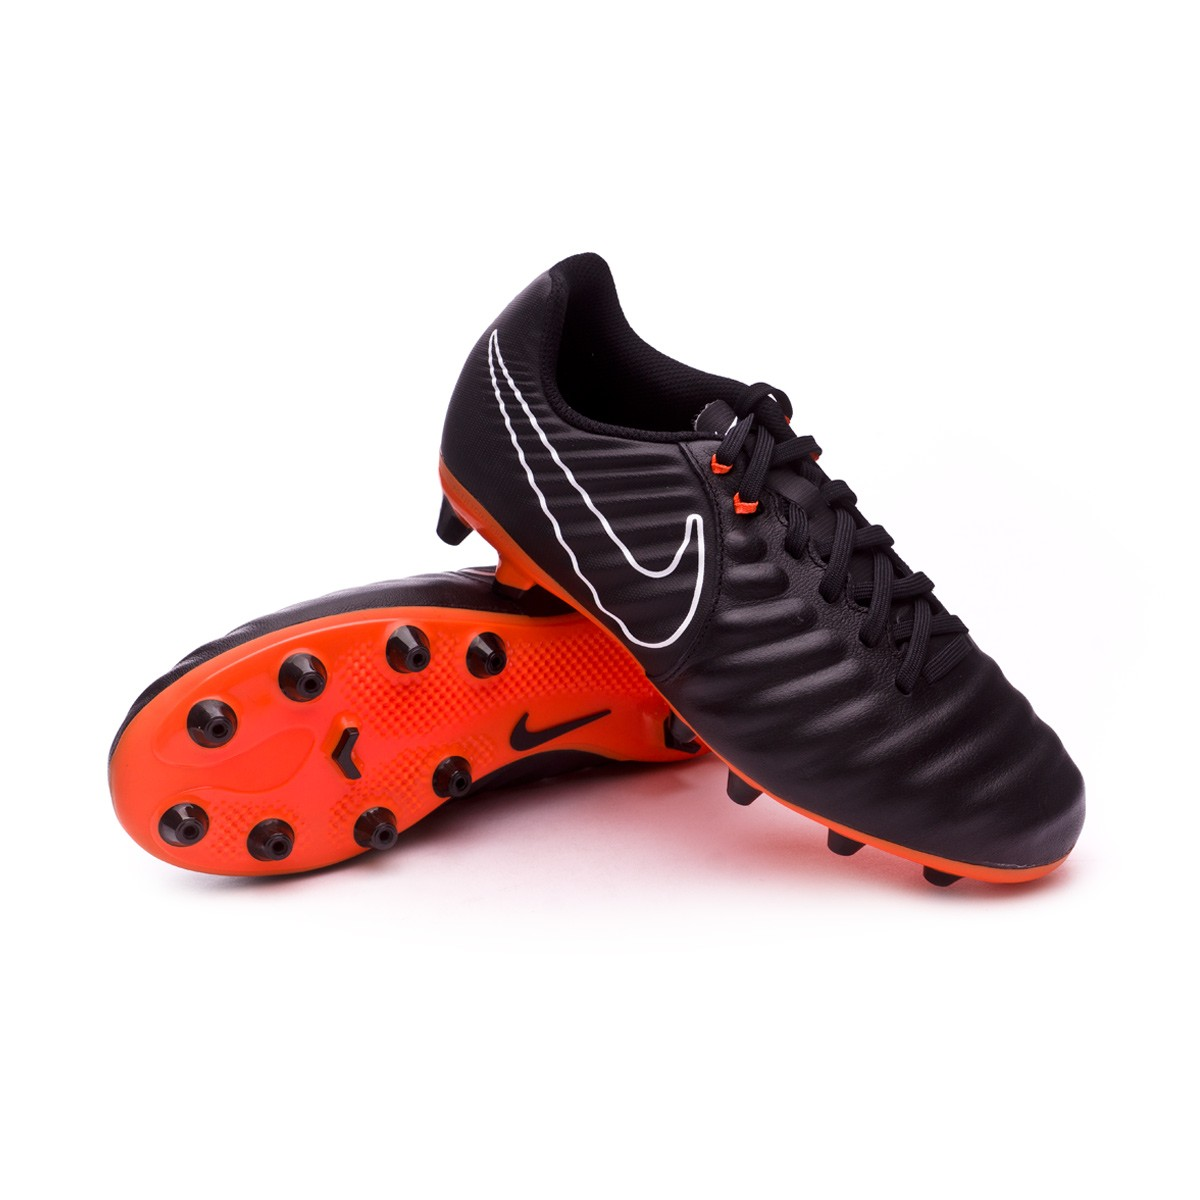 Boot Nike Tiempo Legend VII Academy AG-Pro Kids Black-Total orange ... 053177e3c96c